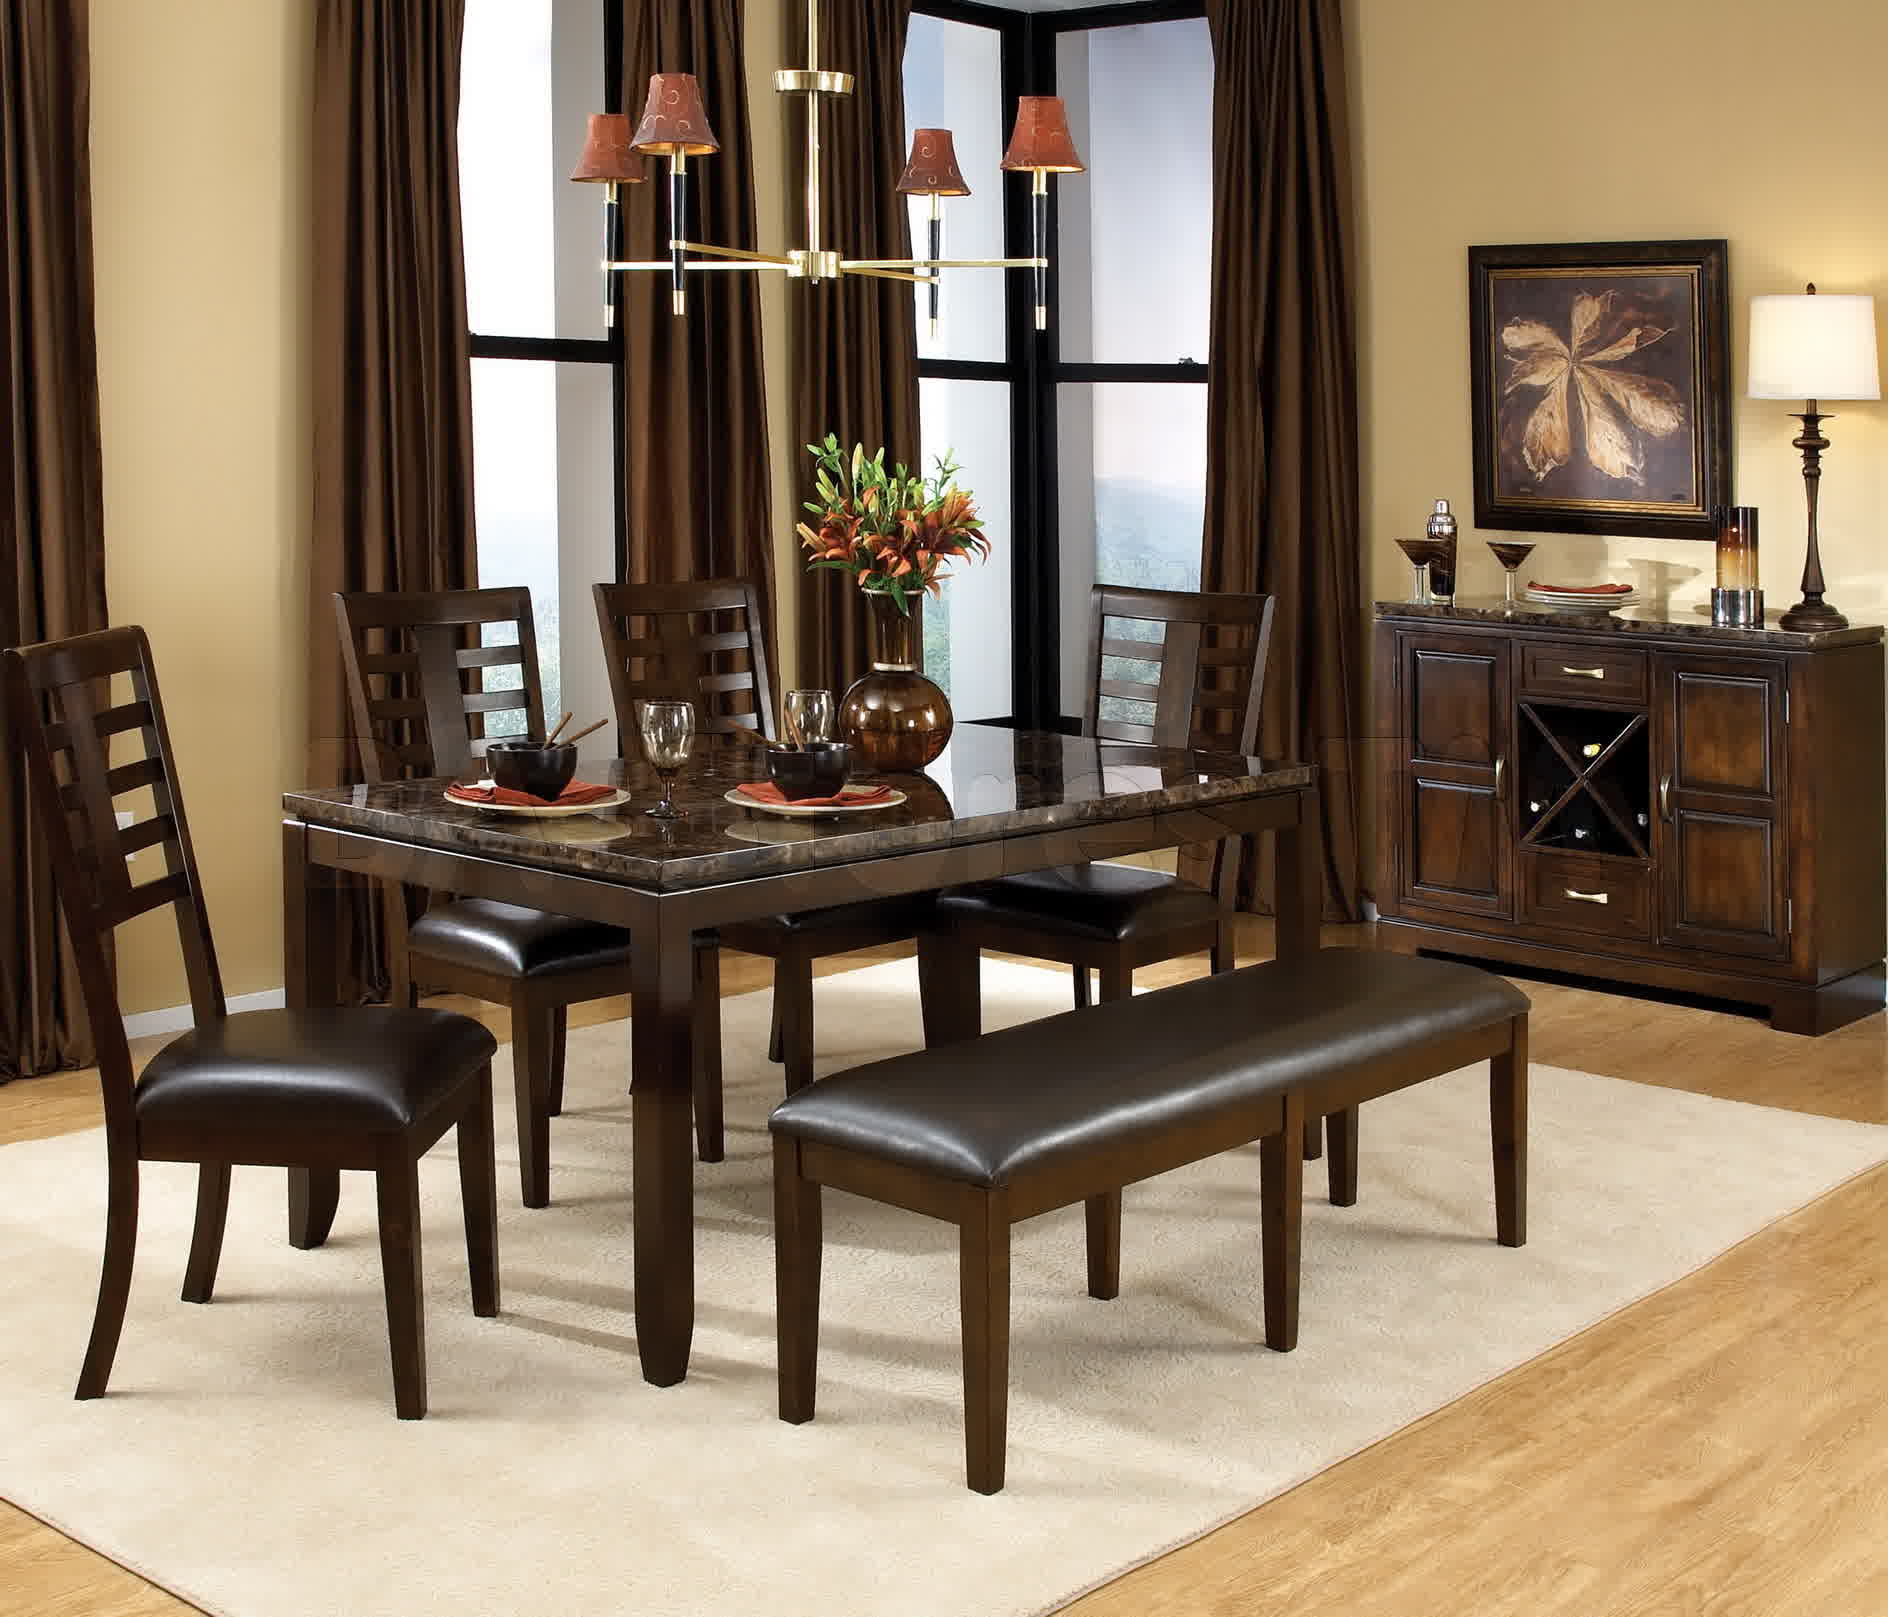 captivating-ikea-dining-sets-design-ideas-with-rectangle-shape-dark-brown-wooden-dining-table-with-marble-top-also-combine-with-armless-wooden-chairs-with-brown-leather-seats-also-dark-brown-leather-b